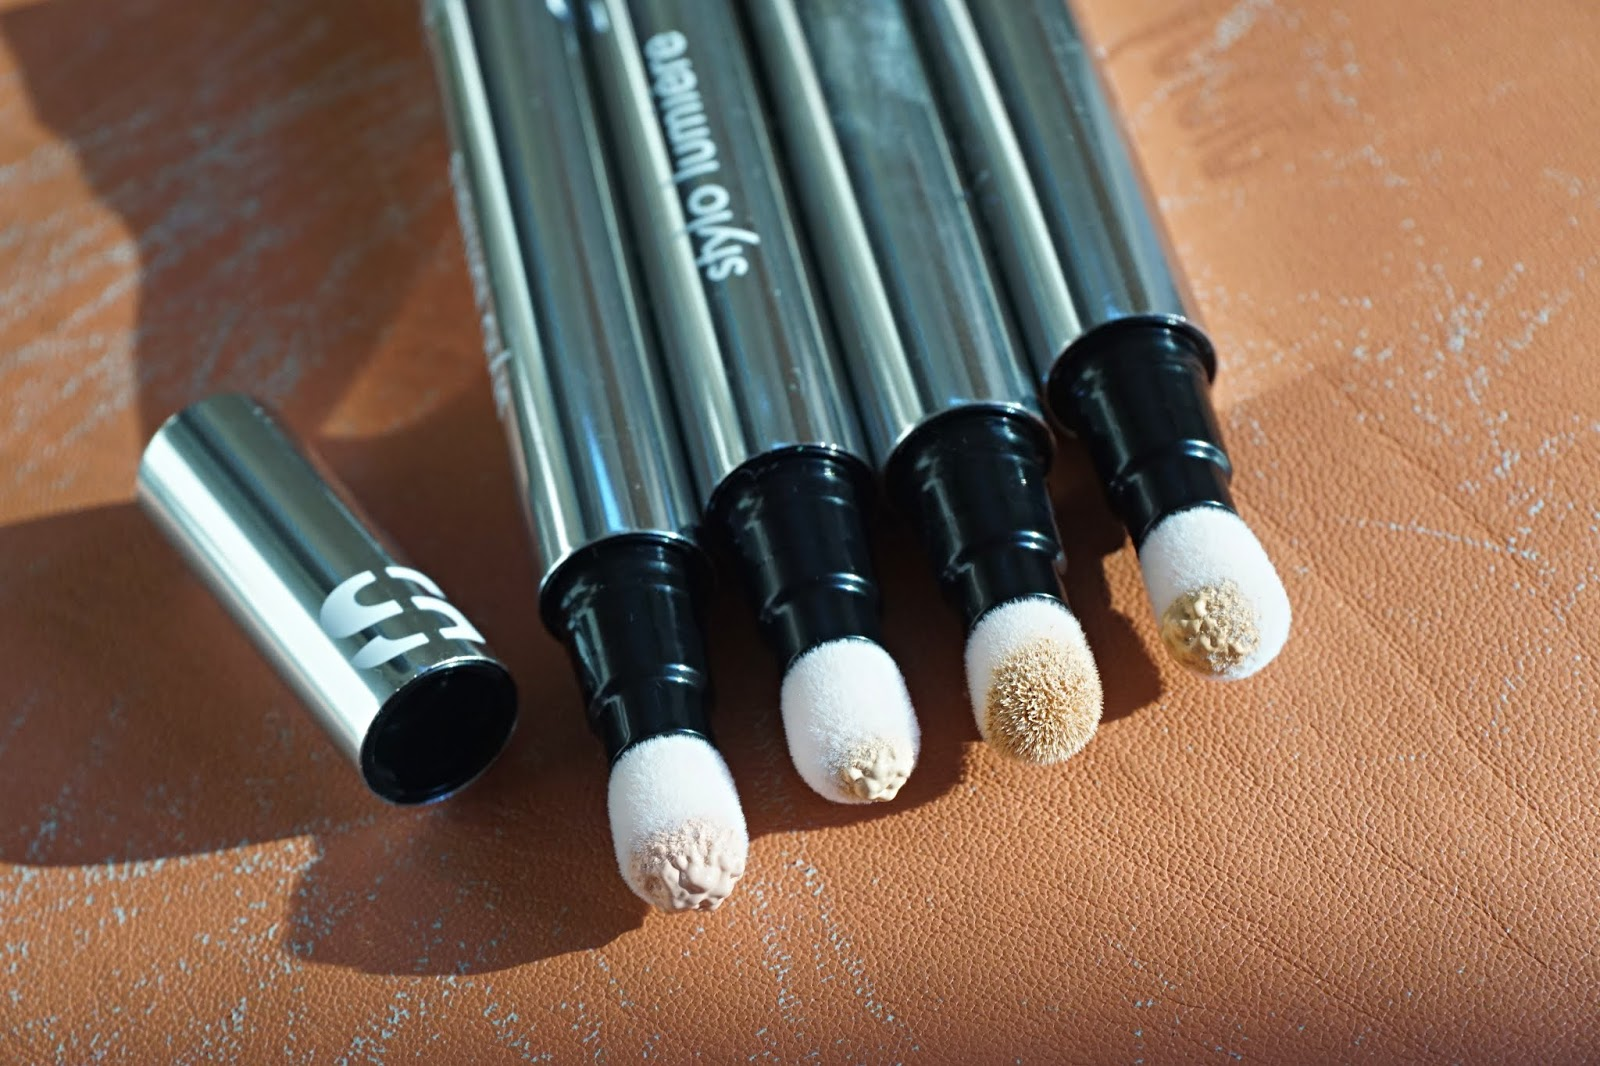 sisley Paris stylo lumiere swatches